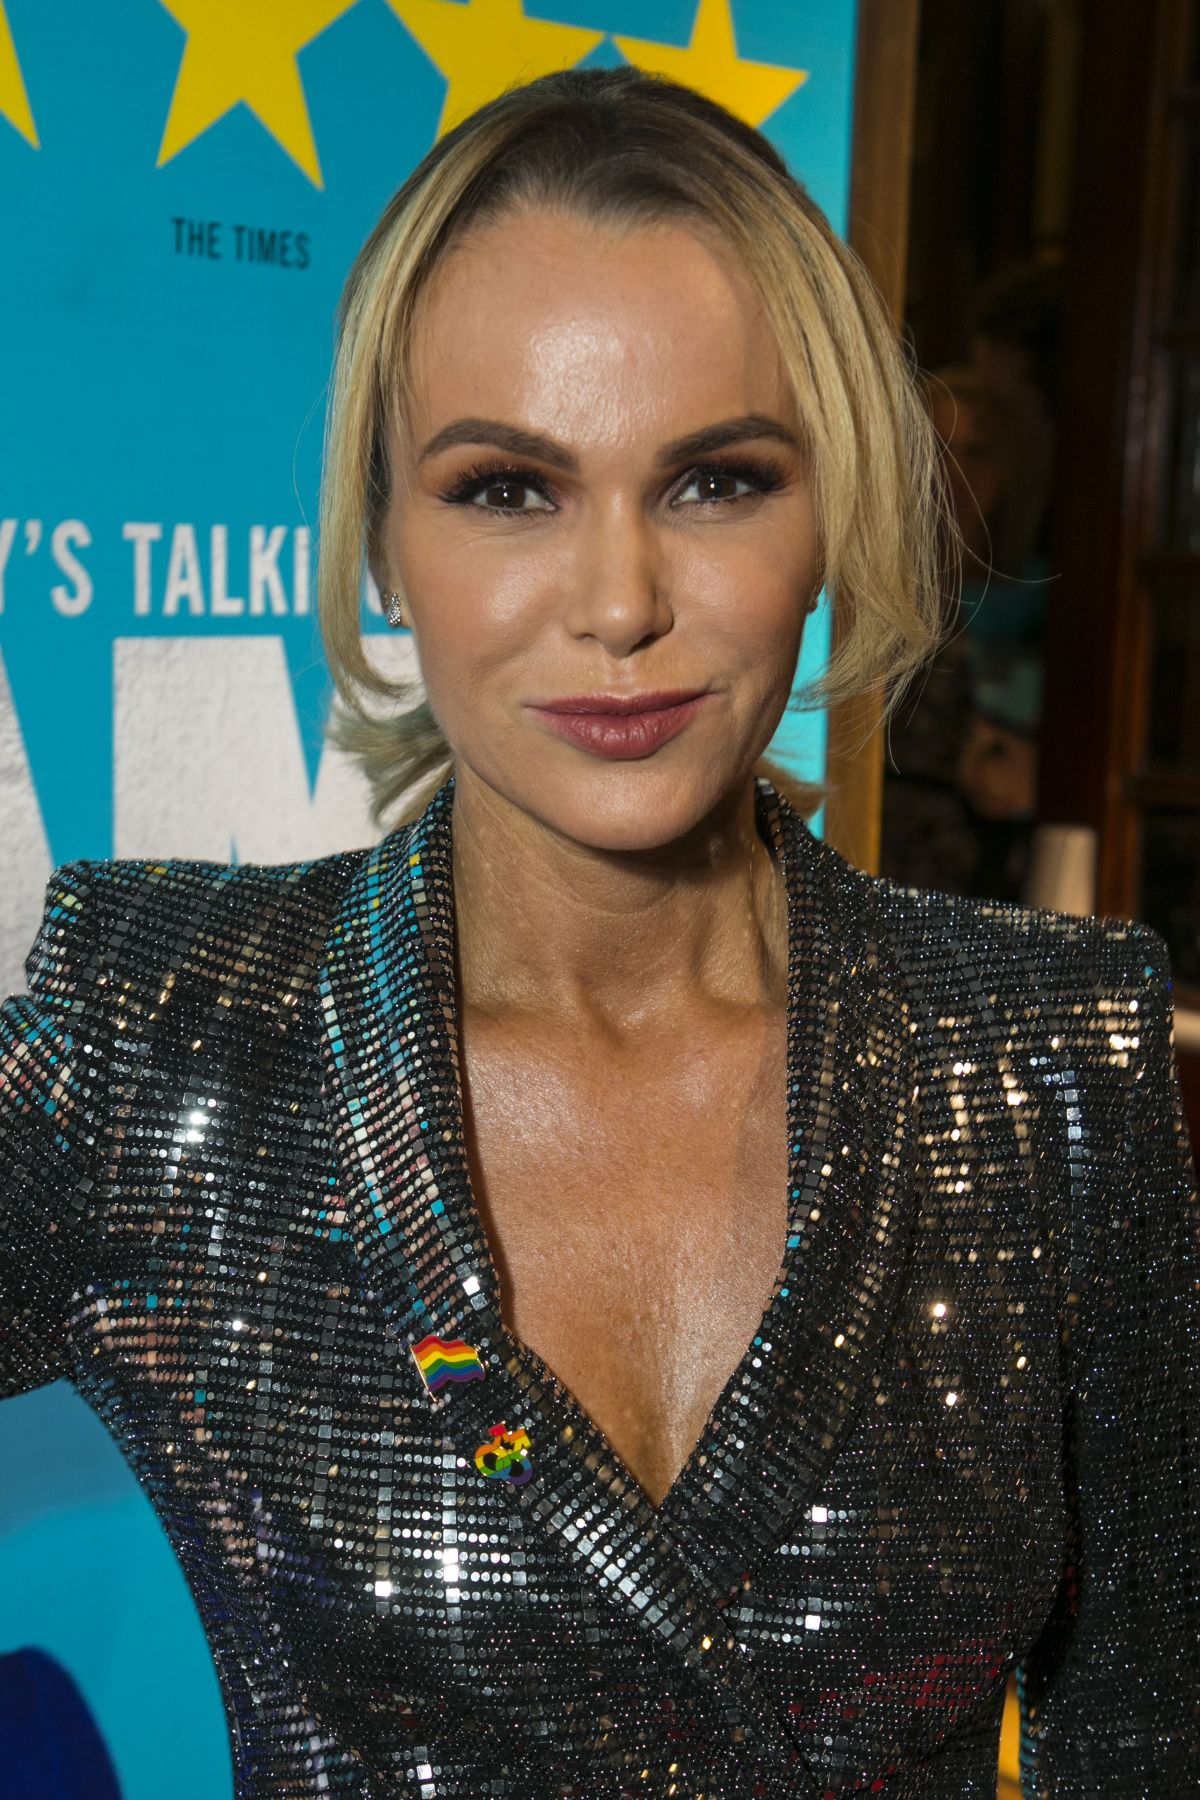 da12485f0e AMANDA HOLDEN at Everybody s Talking About Jamie Press Night in London  11 22 2017